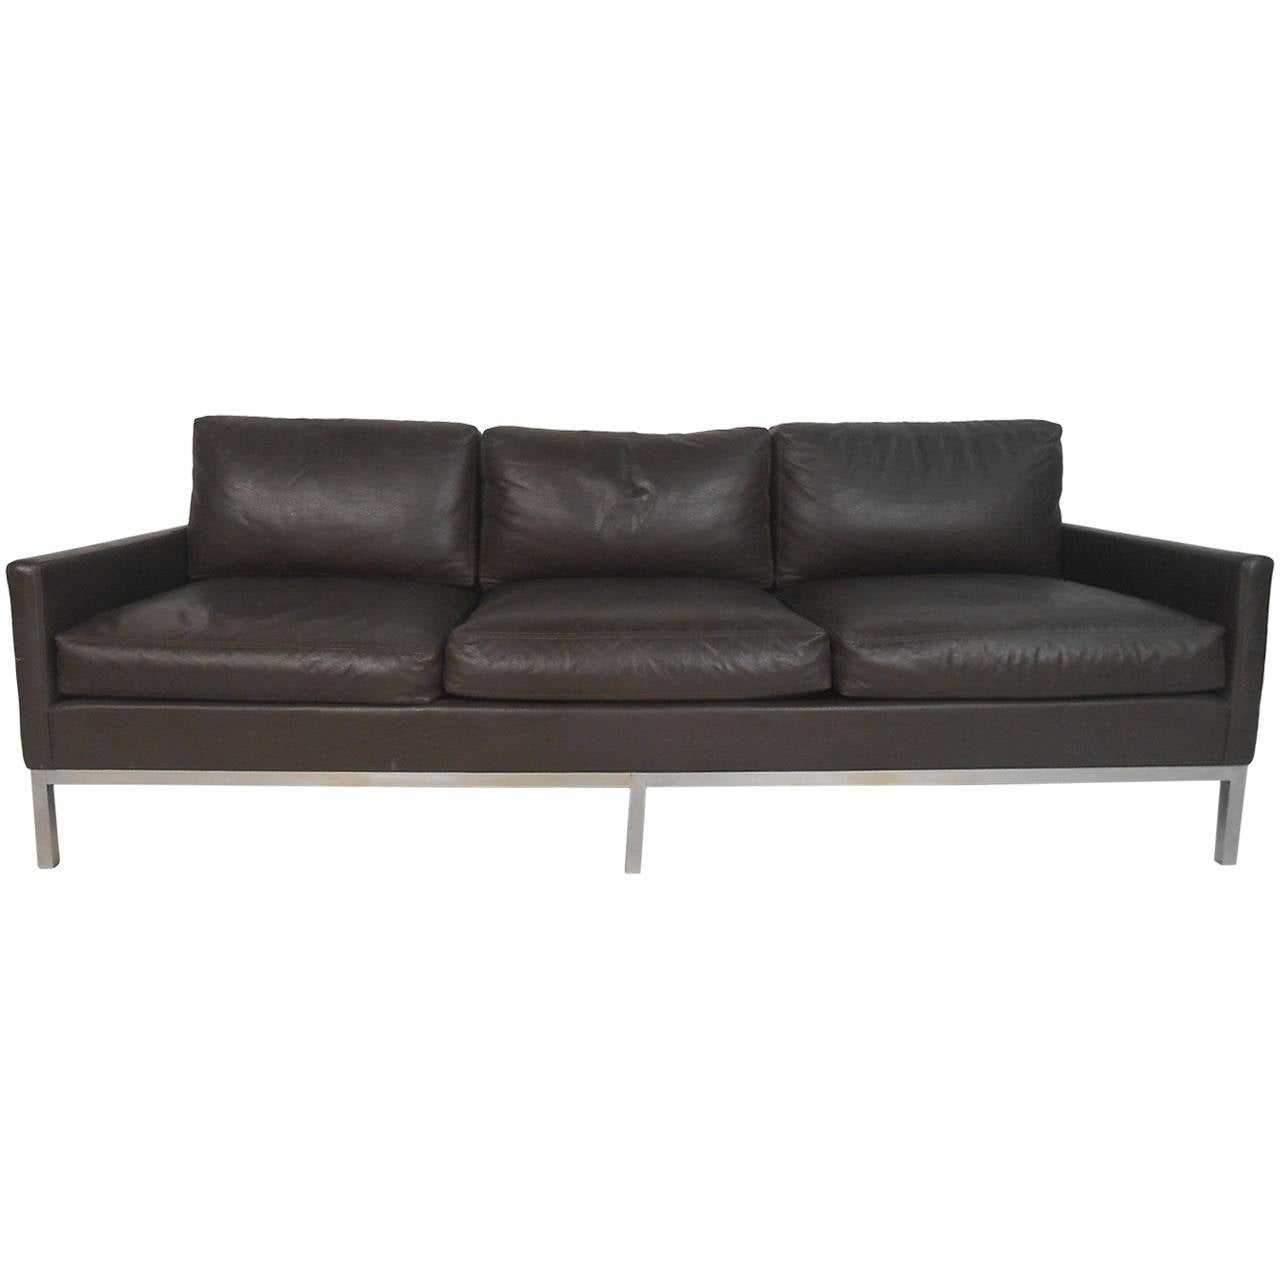 Mid century modern florence knoll style leather sofa for for Modern style sofa